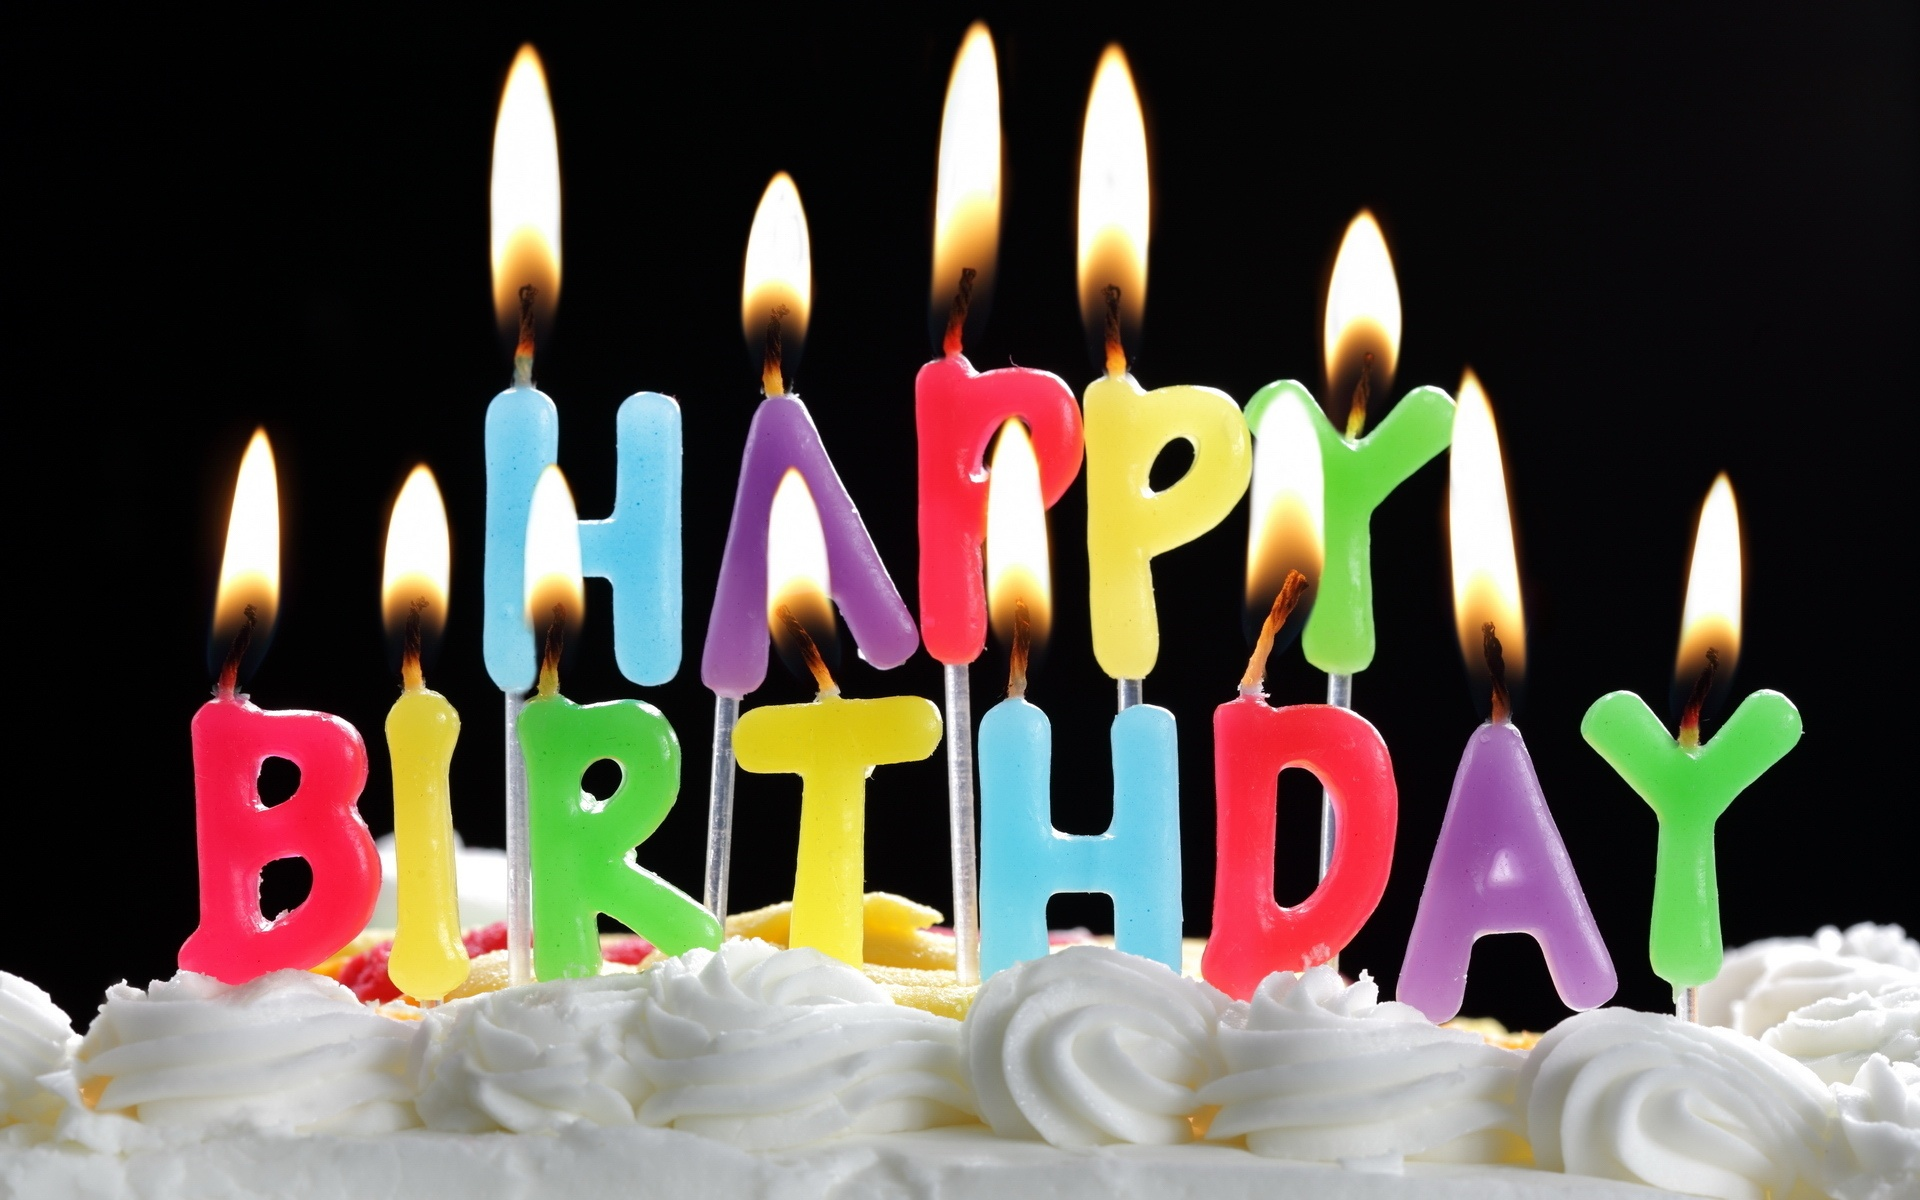 http://www.bhmpics.com/walls/happy_birthday_cake_with_candles-wide.jpg